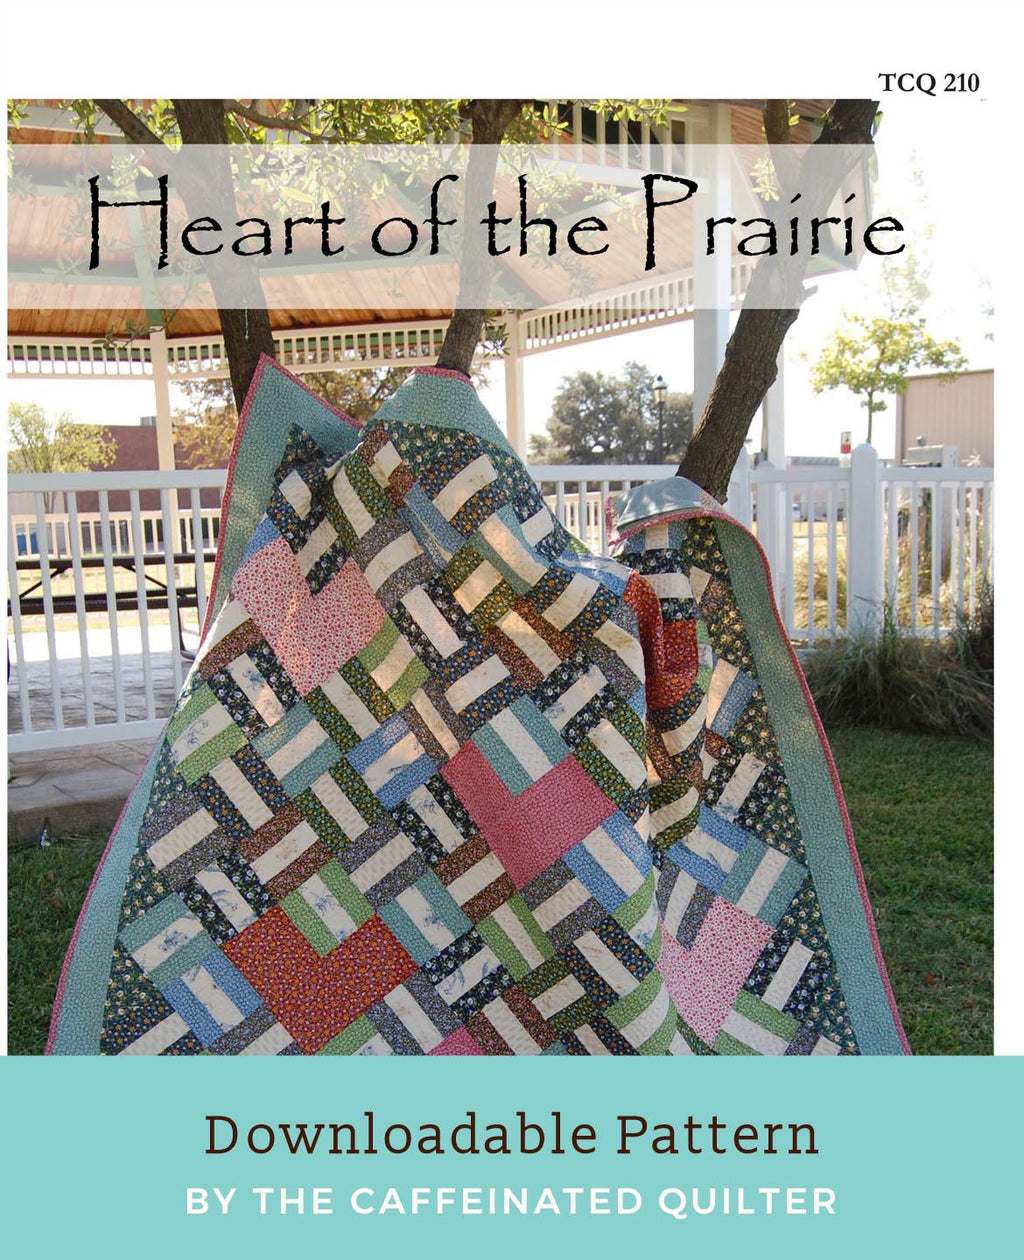 Heart of the Prairie Download